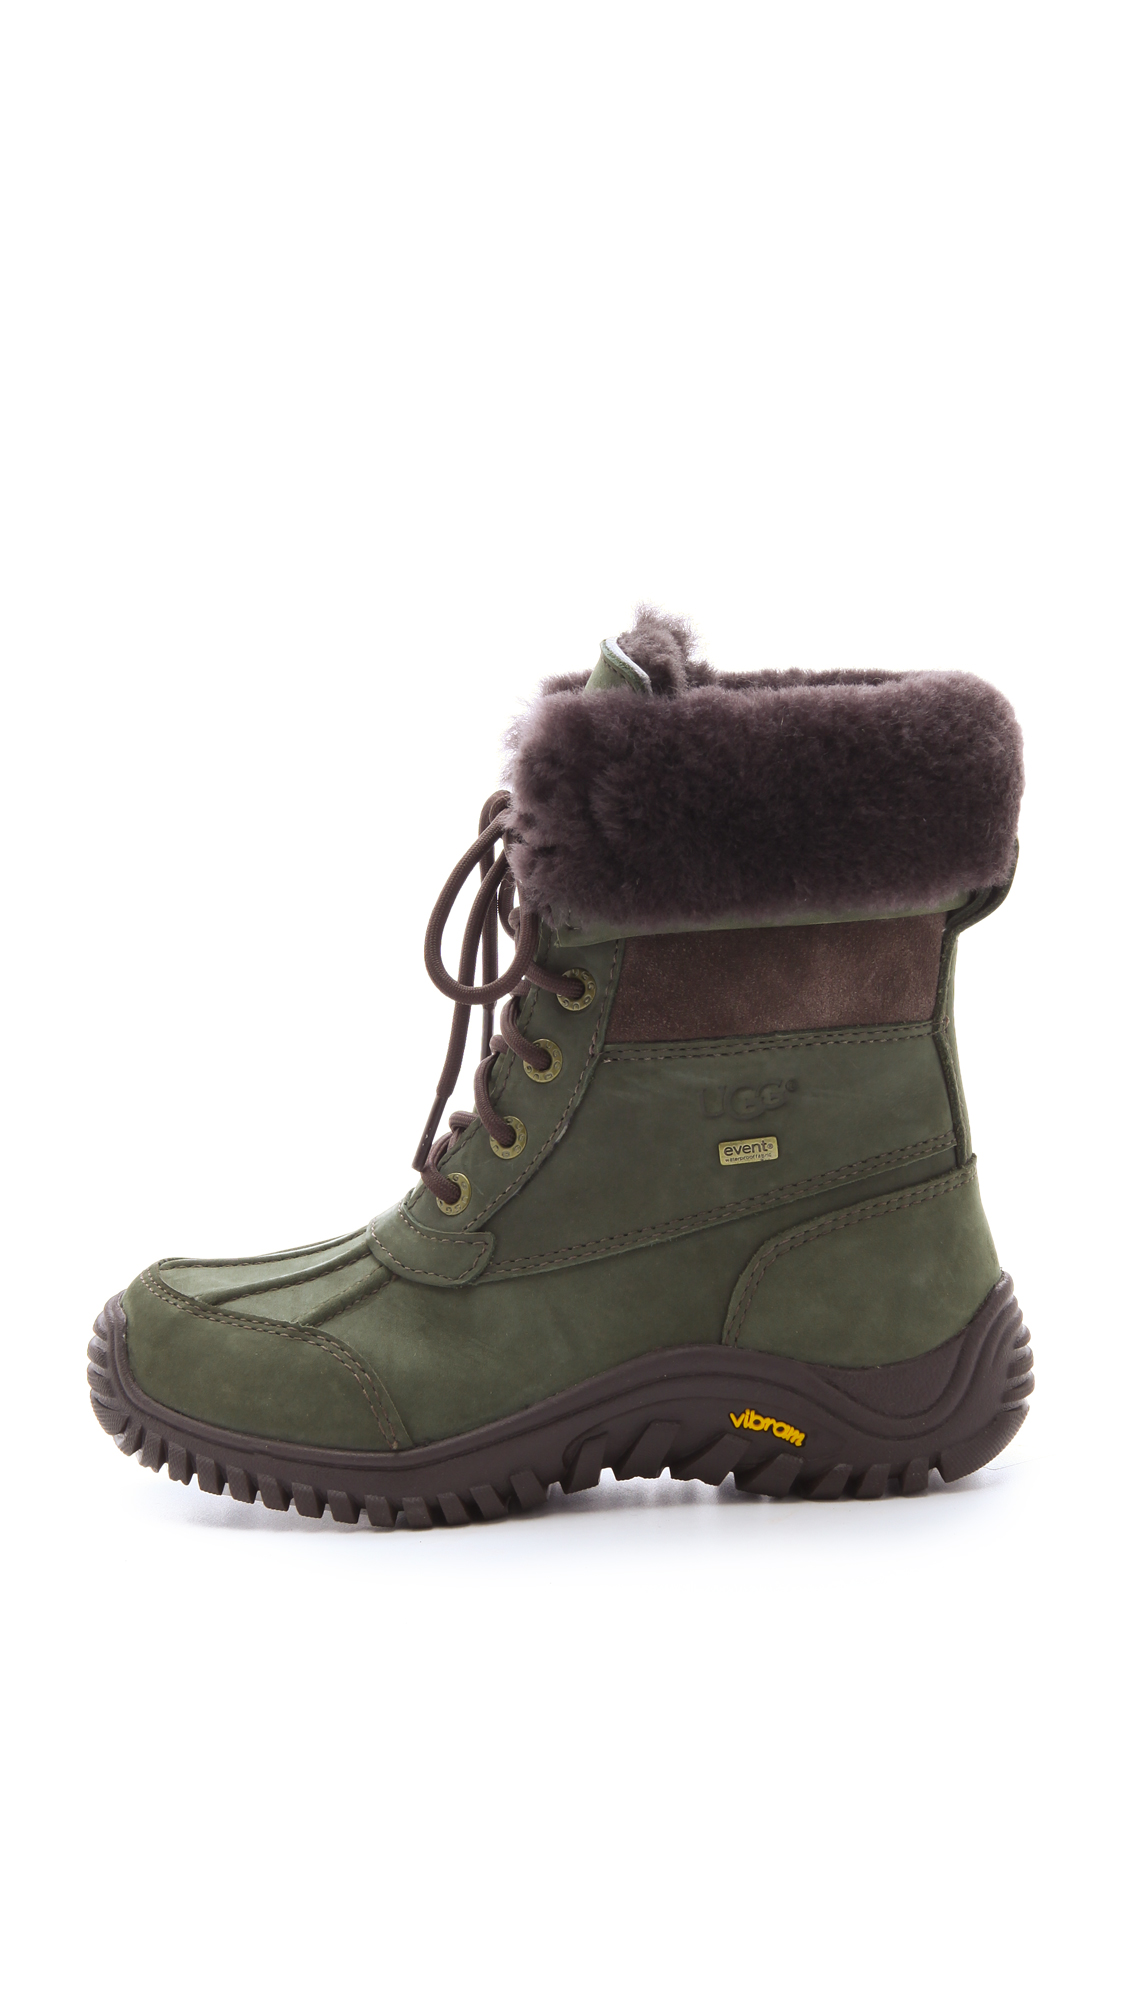 Lyst Ugg Adirondack Boots In Green